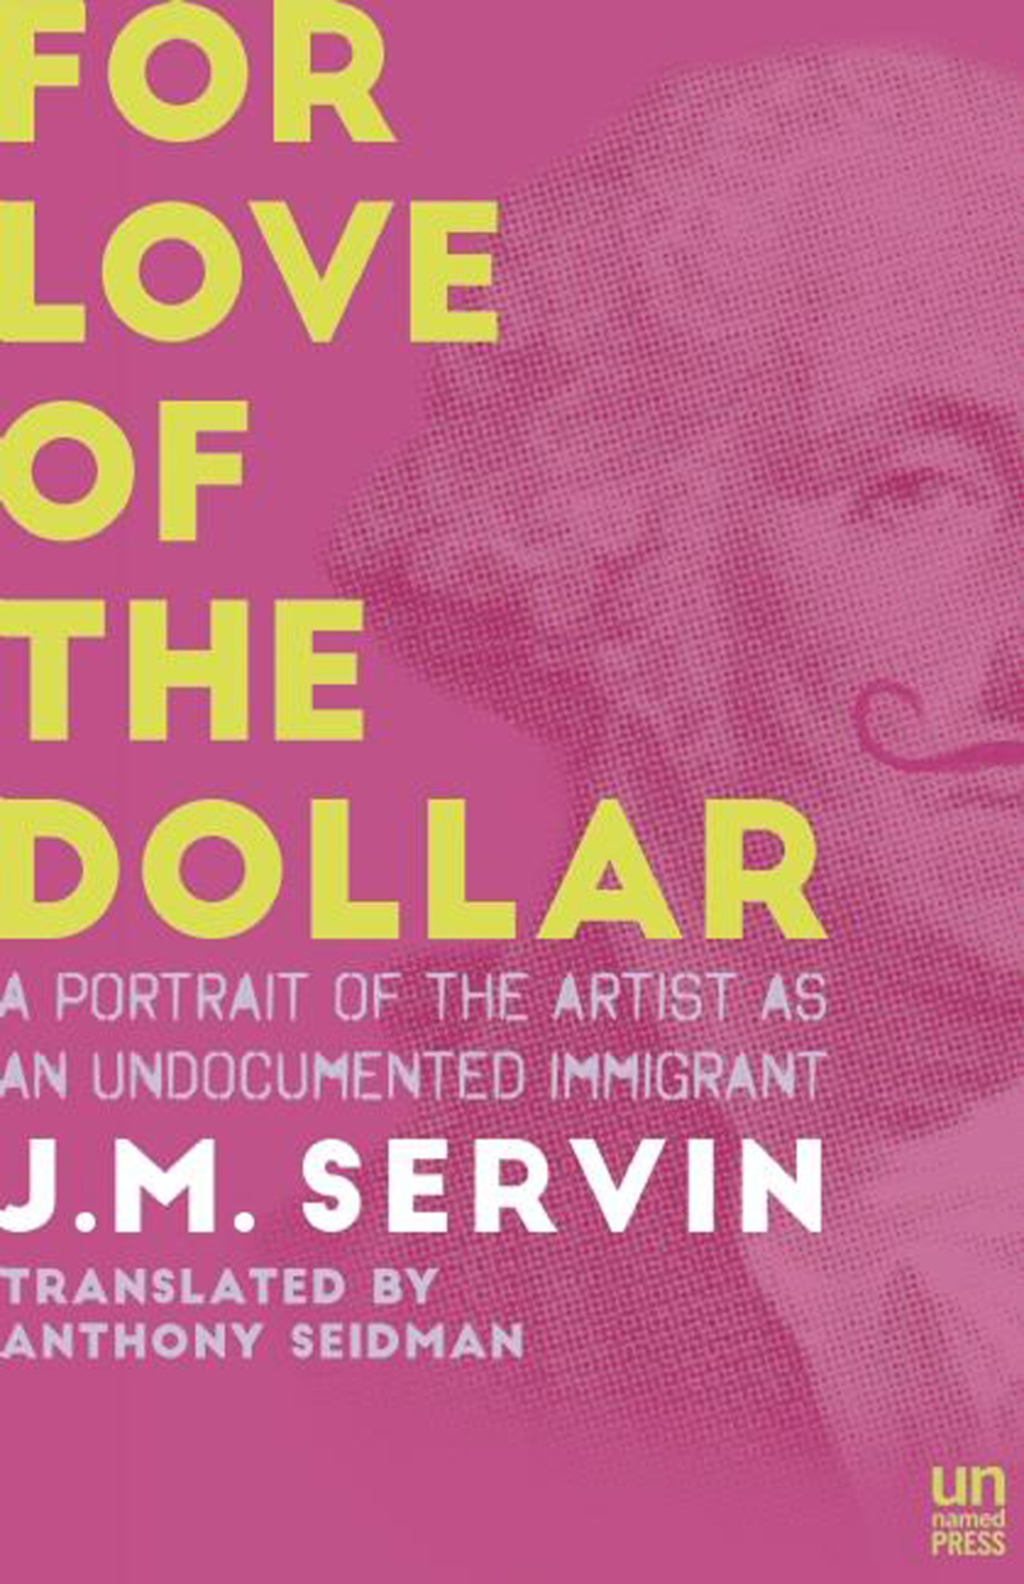 For Love of the Dollar (ebook) eBooks